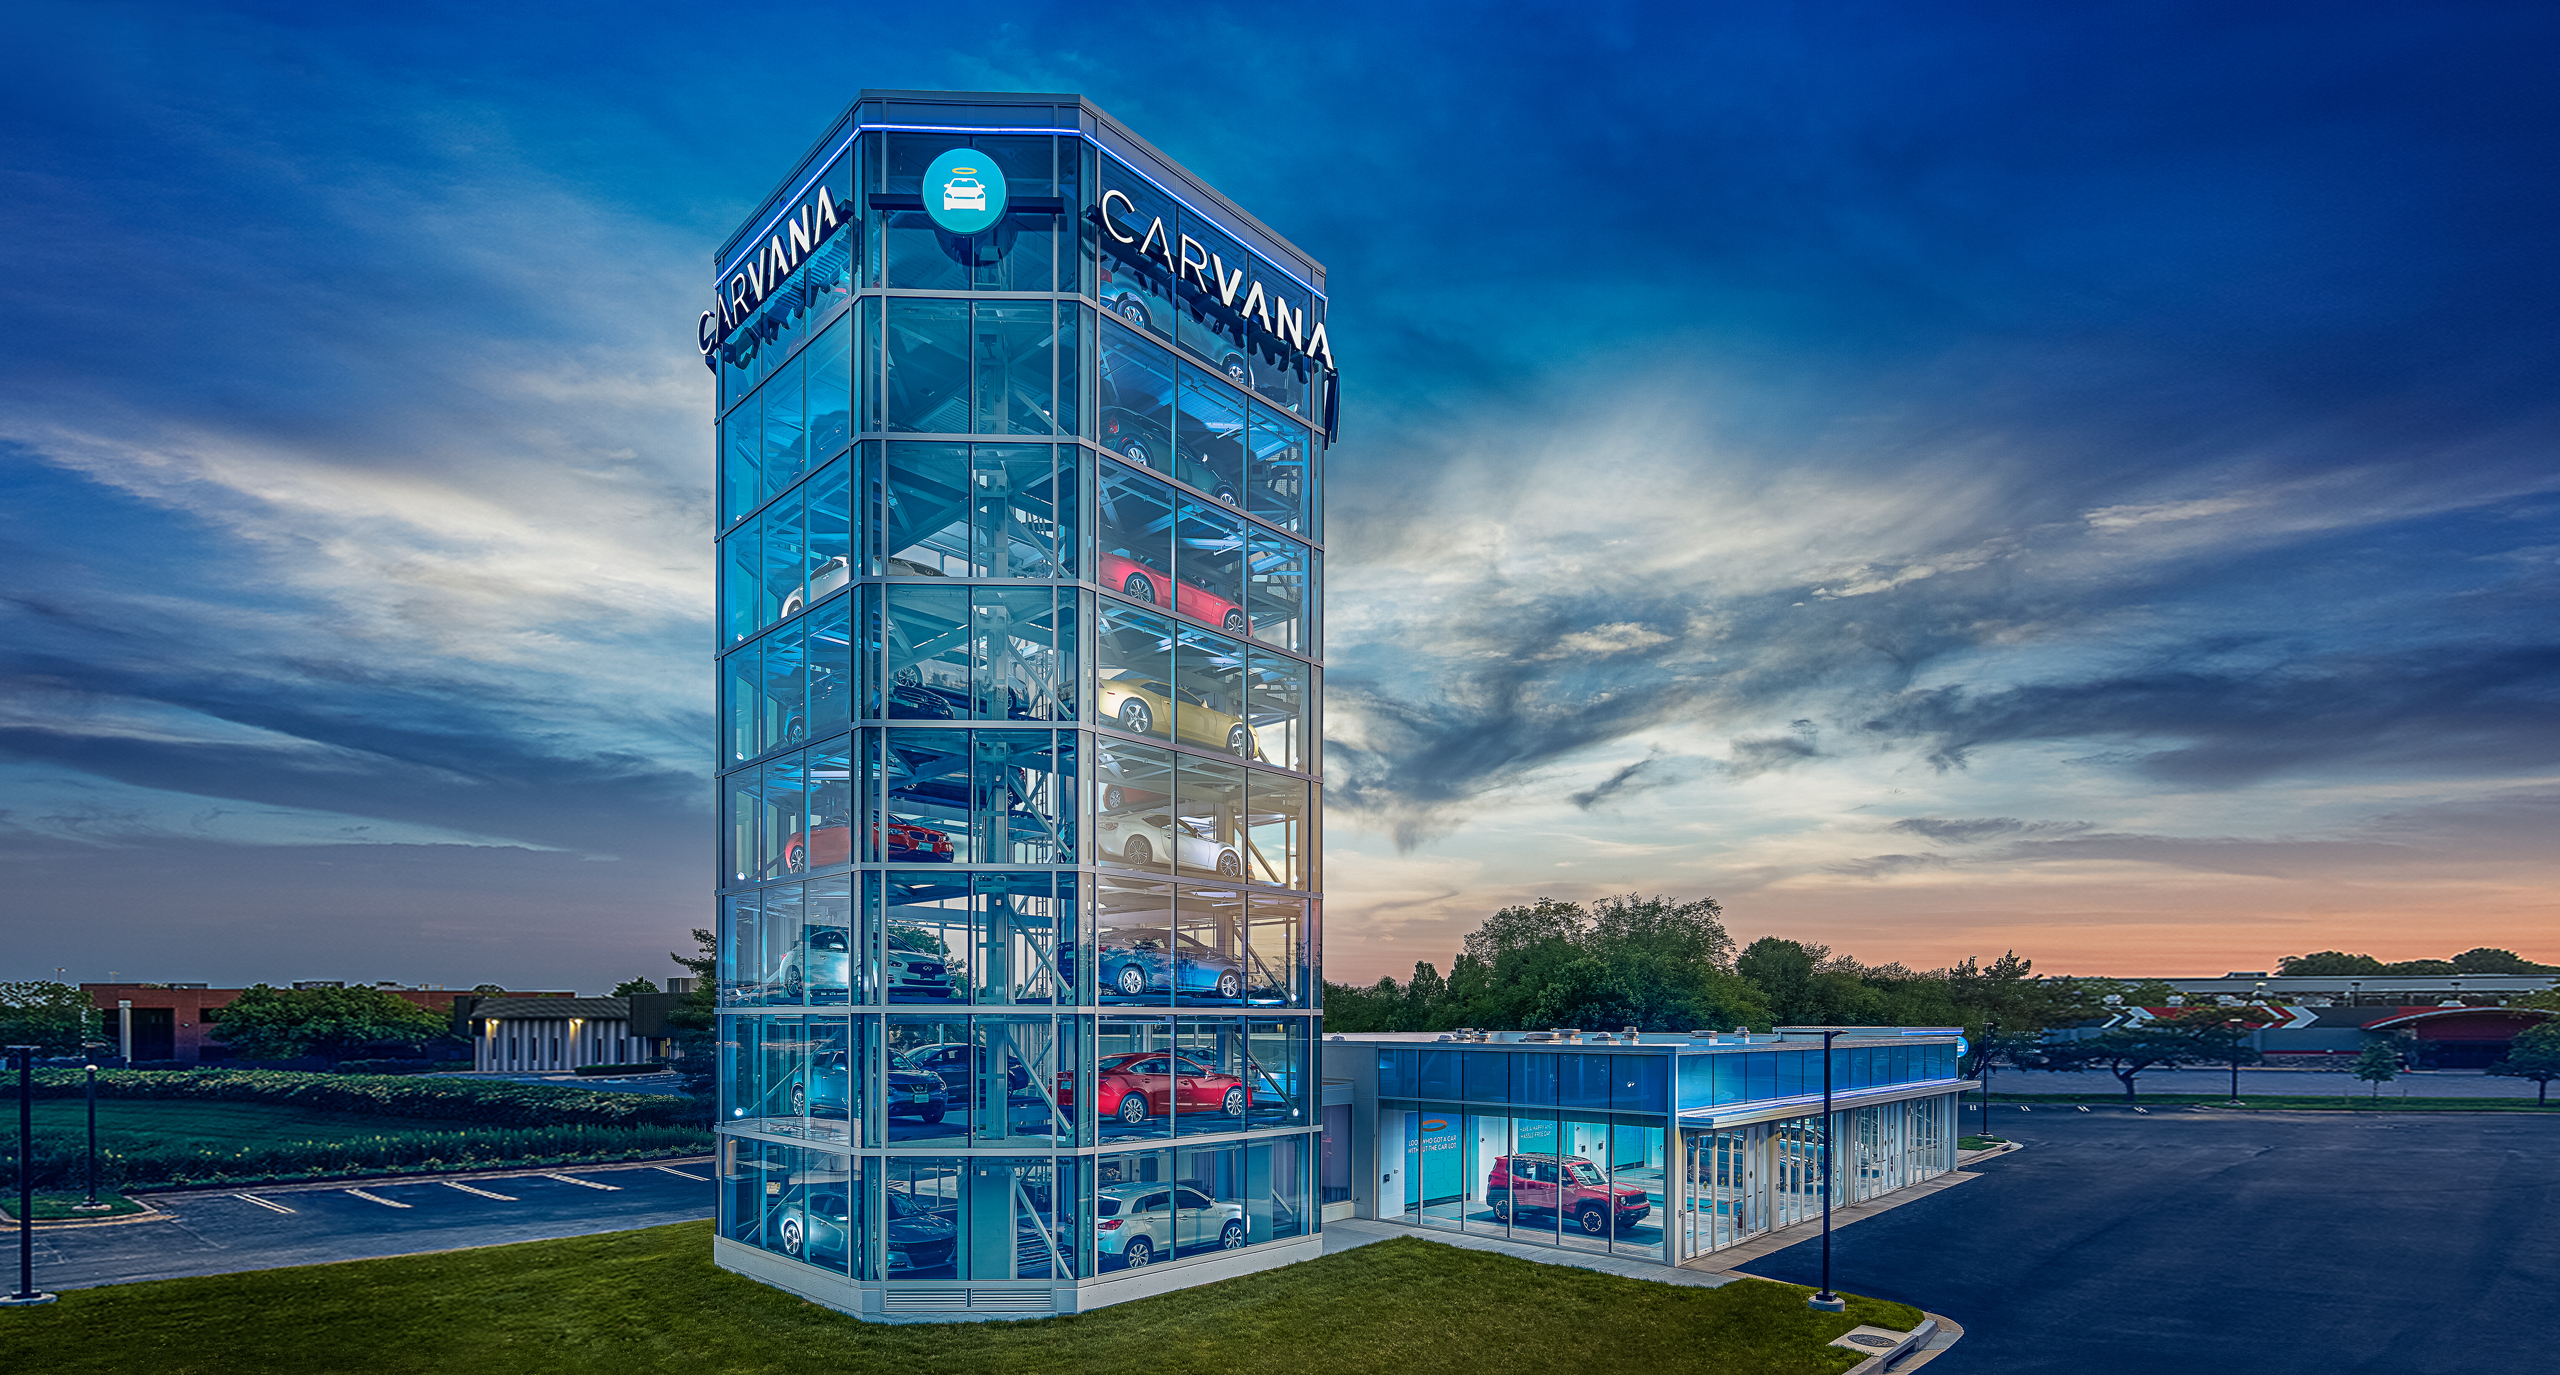 Carvana Debuts Newest Car Vending Machine in the Nation's